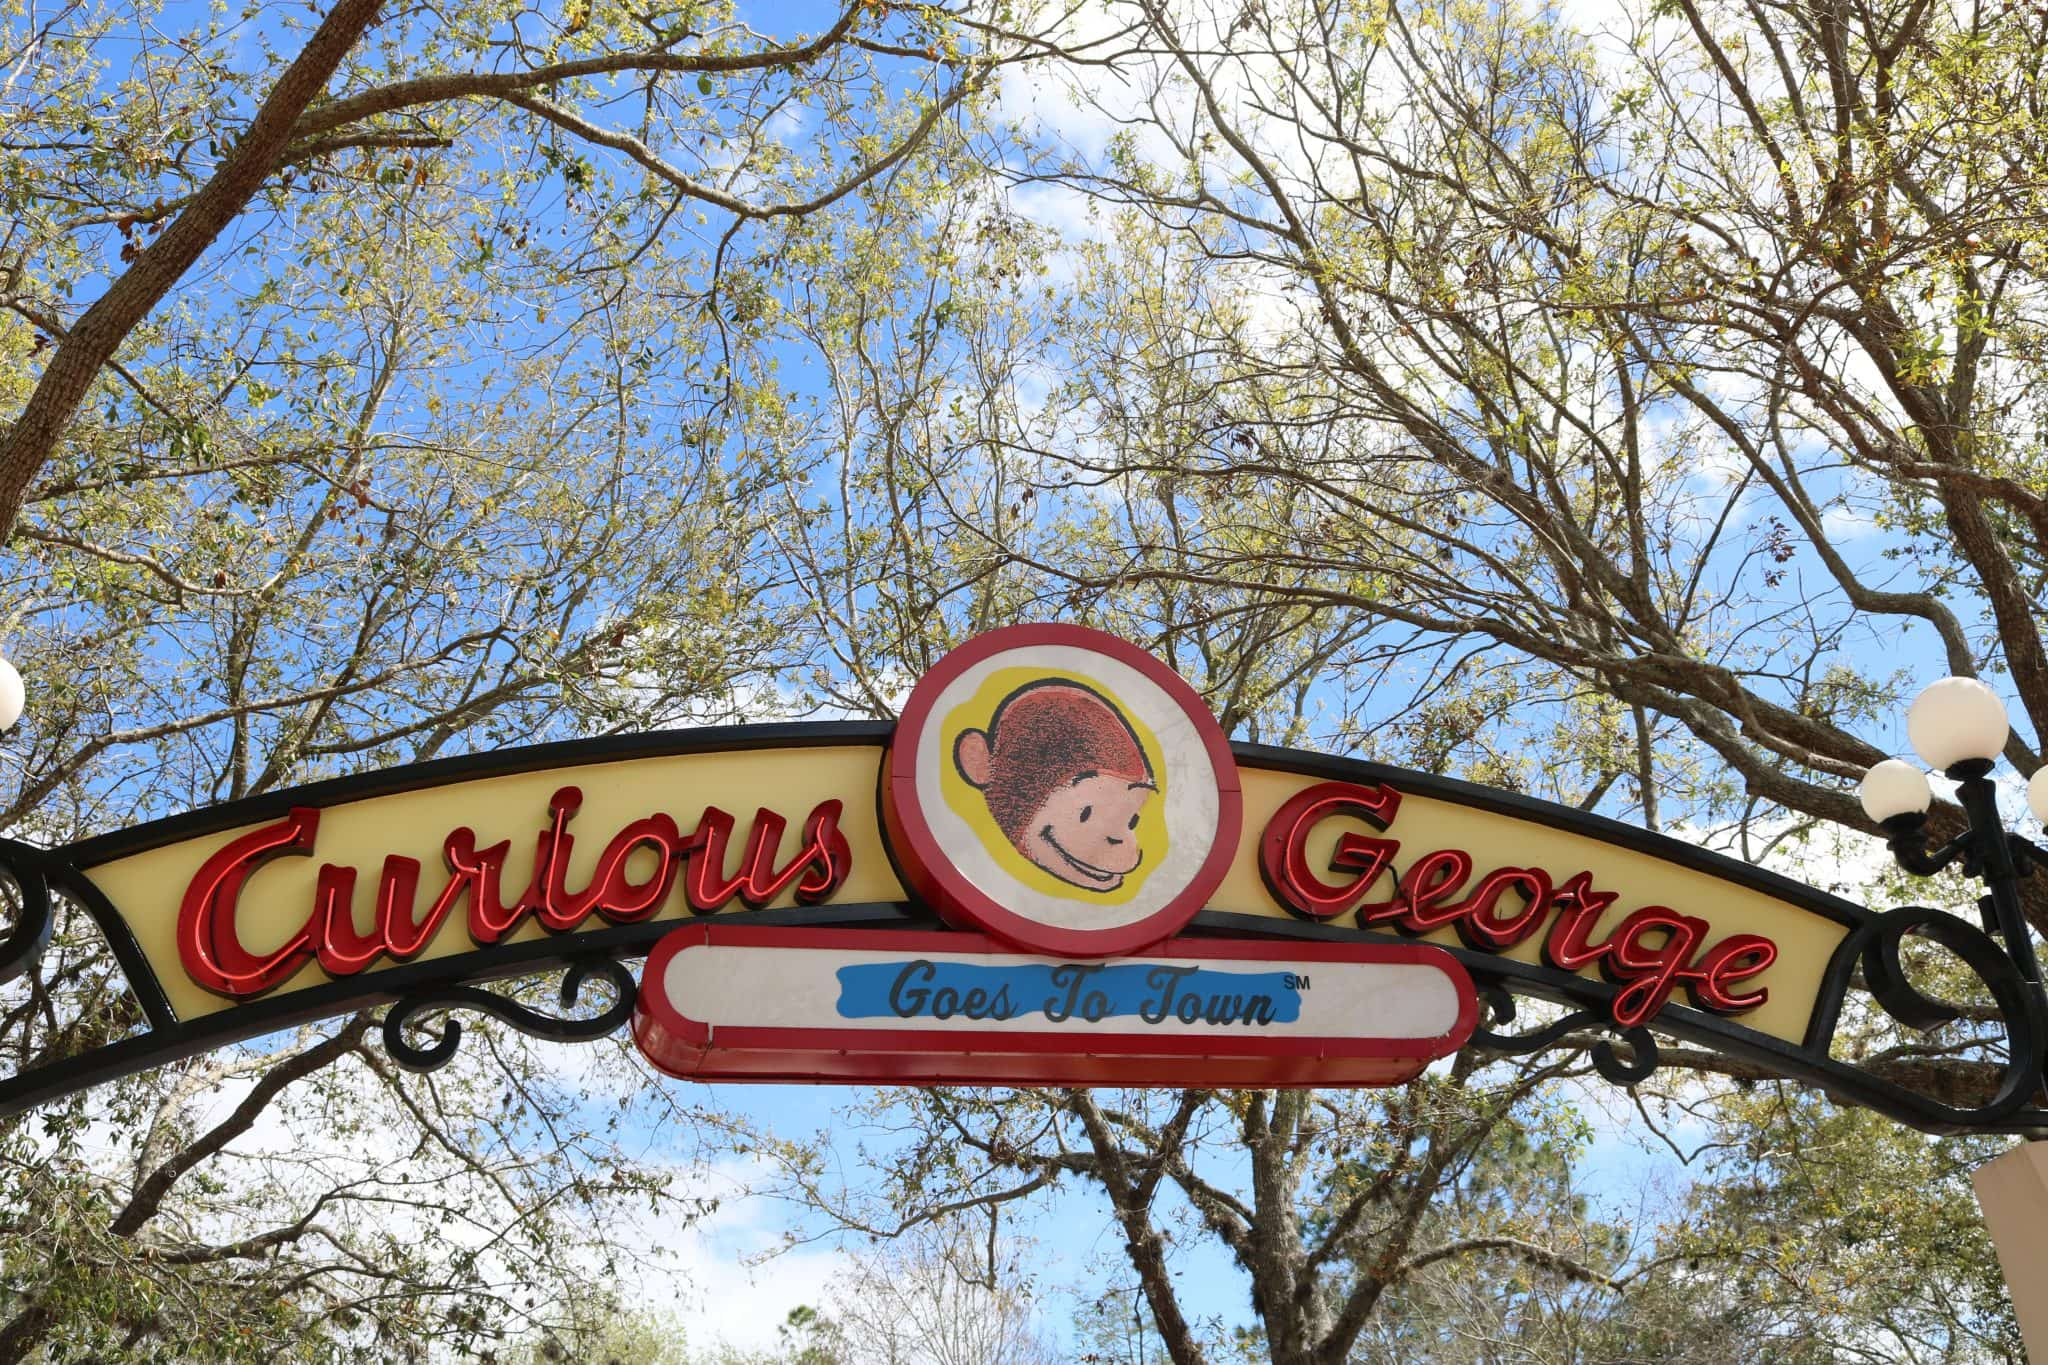 Curious George goes to town